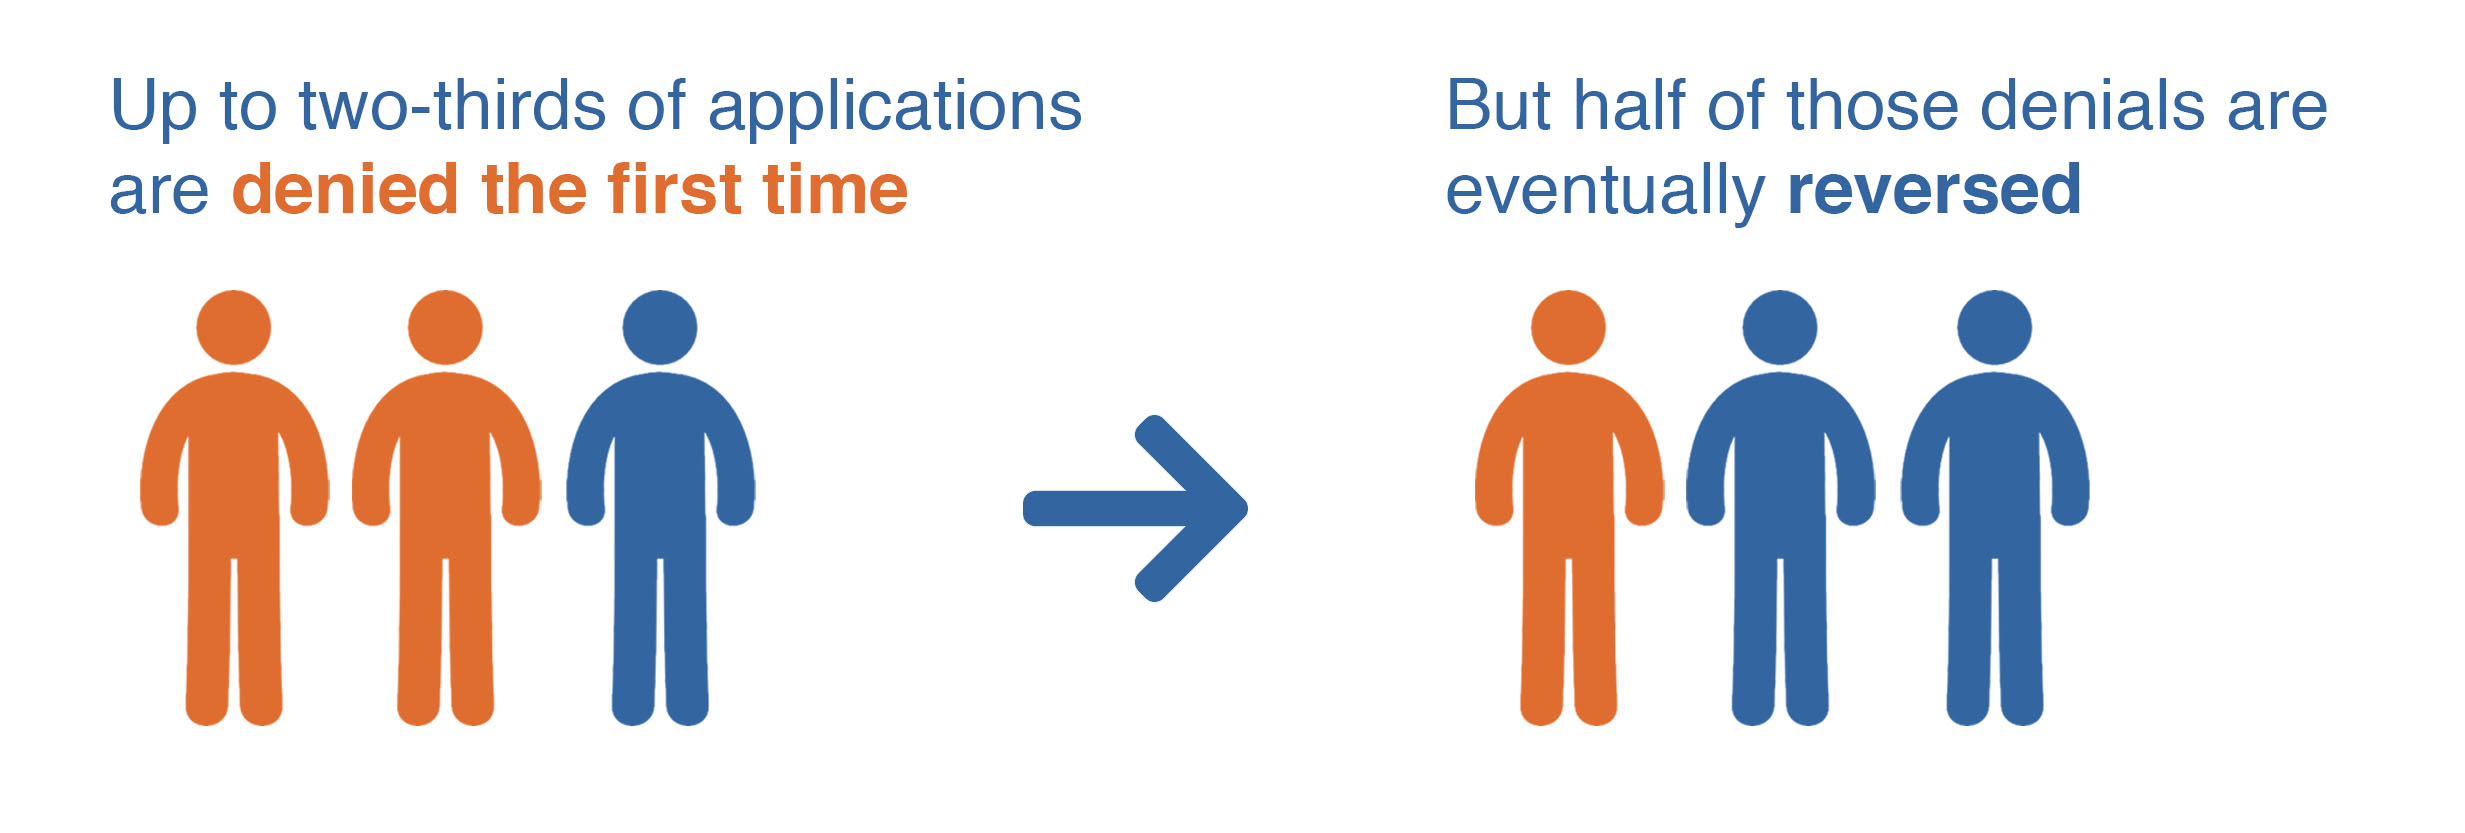 Image of icons of people with the subject 'Up to two-thirds of applications are denied the first time. But half of those denials are eventually reversed.'